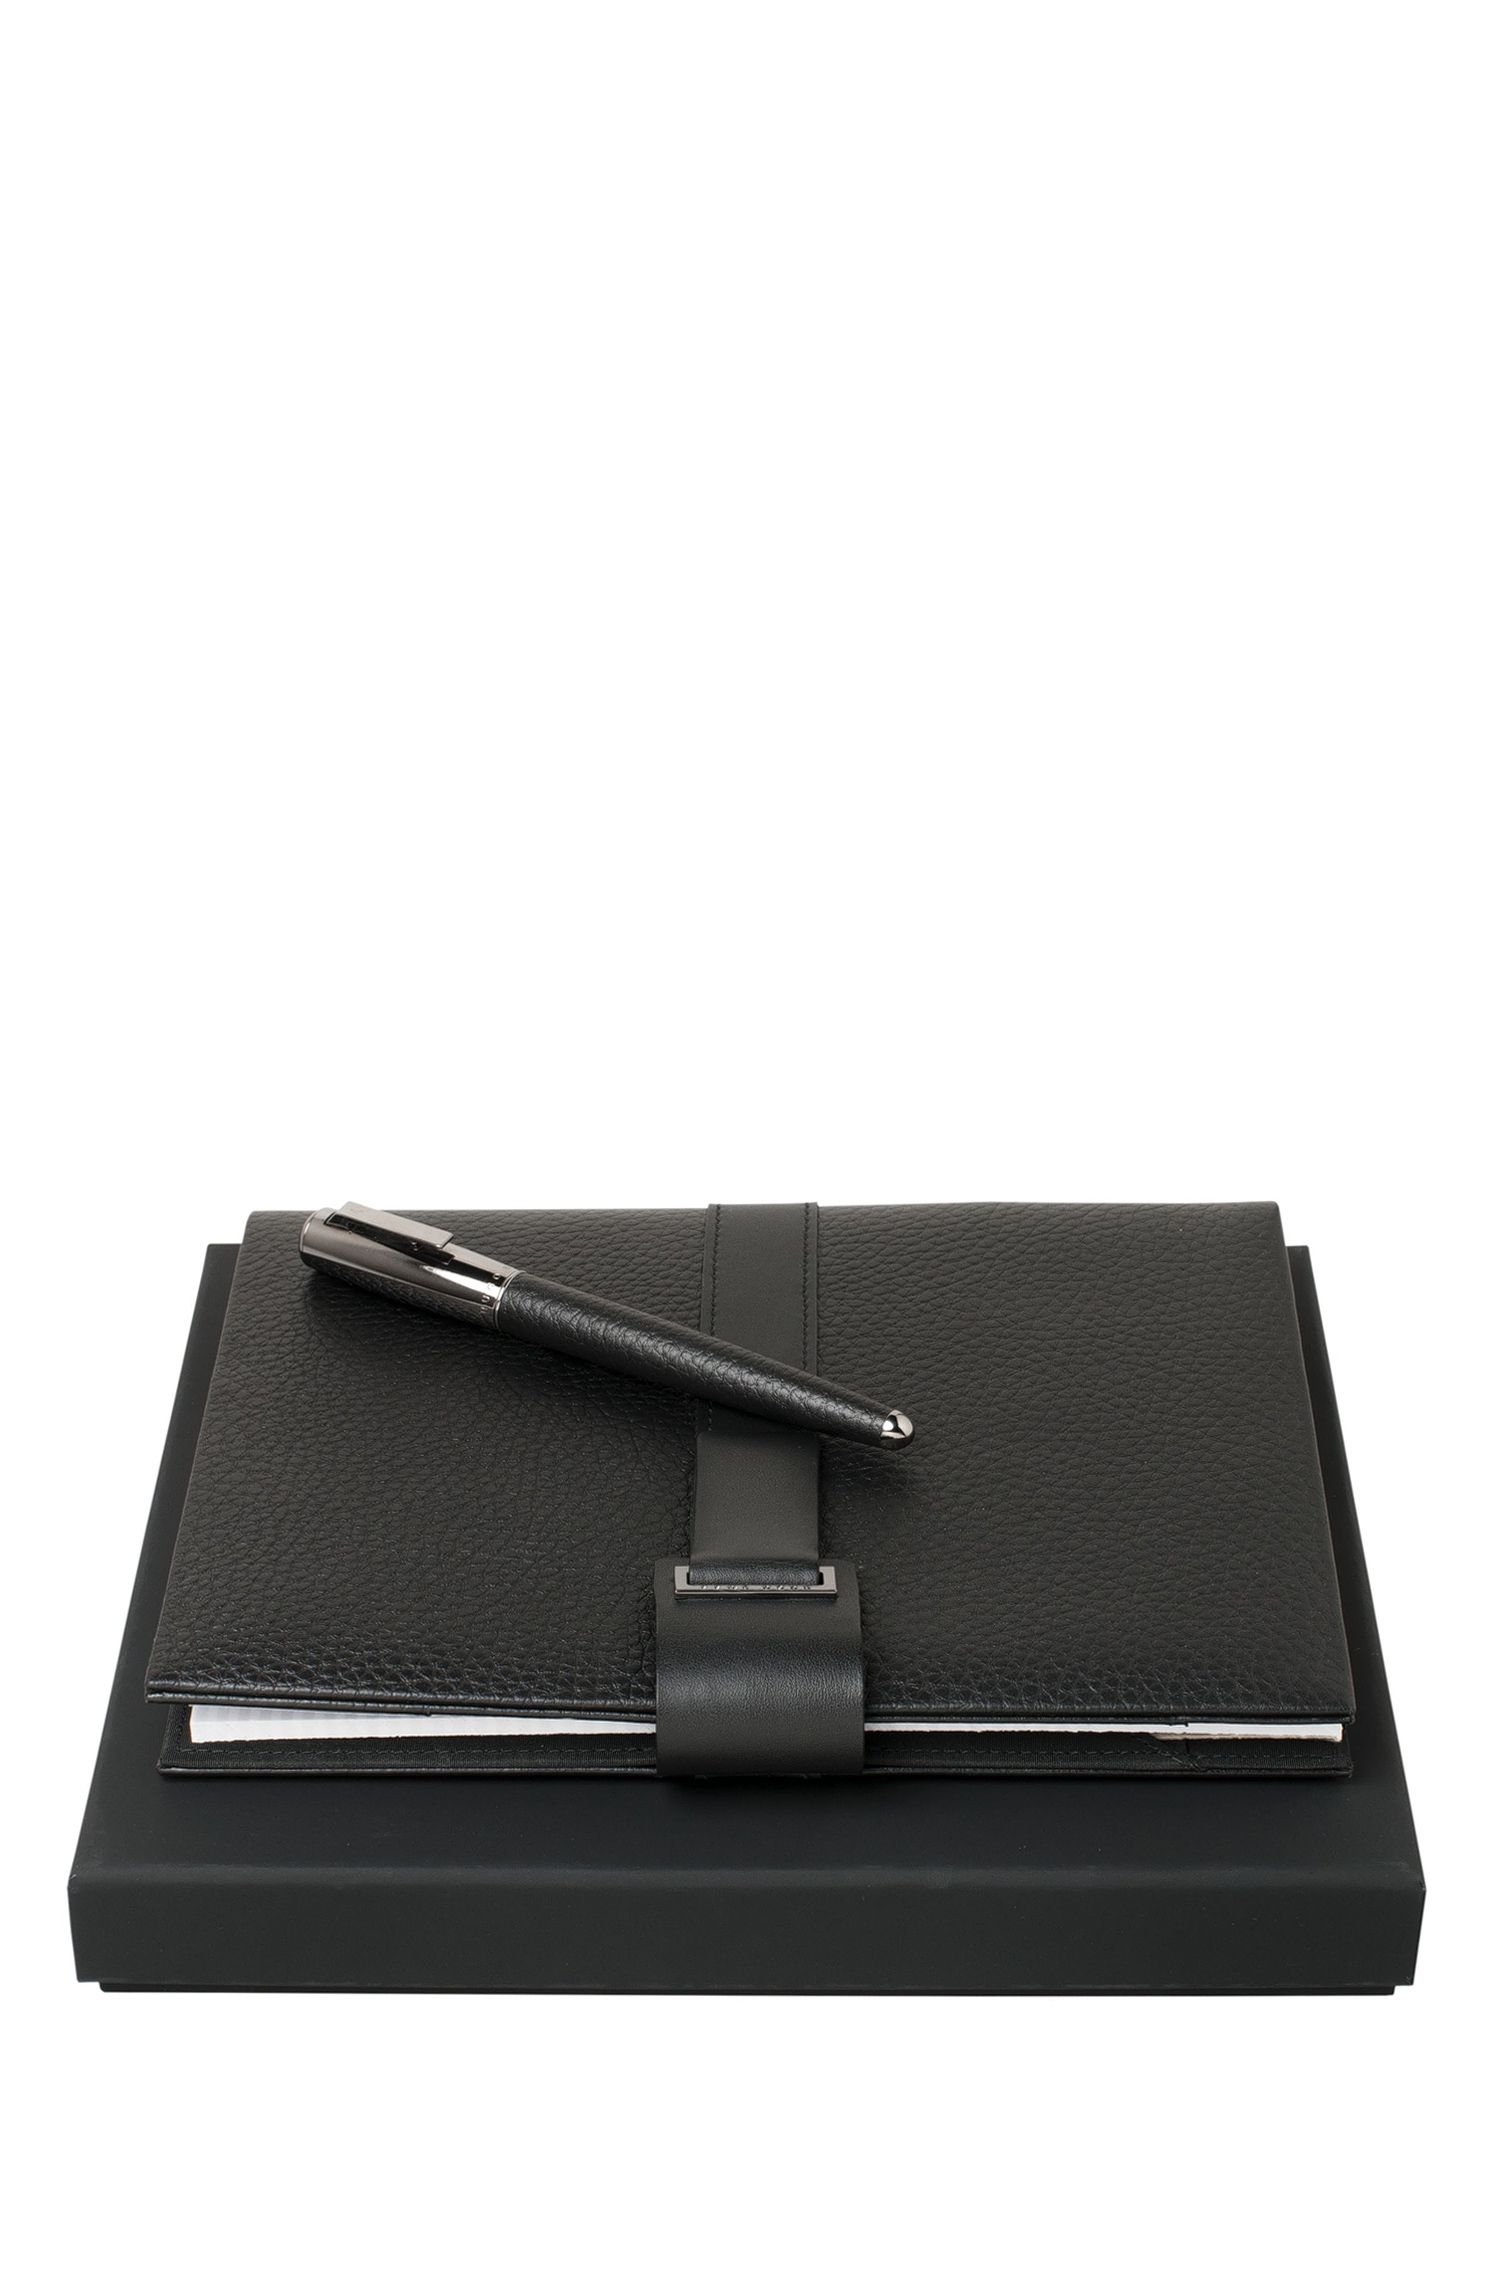 Pure Rollerball Pen Folder Set | HPMR604A